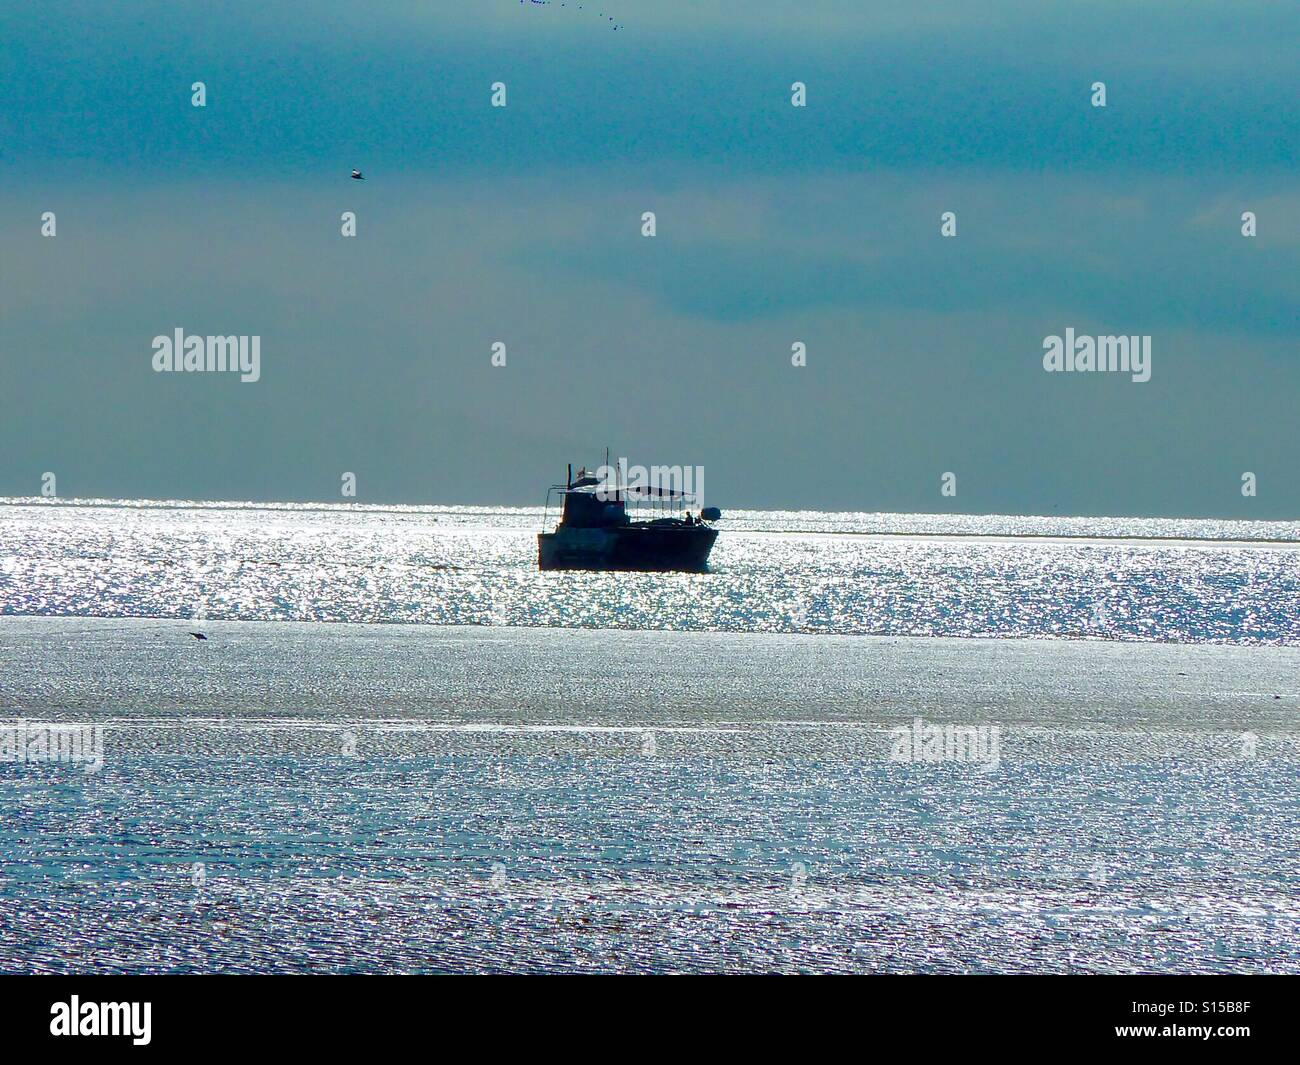 Boat on shimmering sea - Stock Image